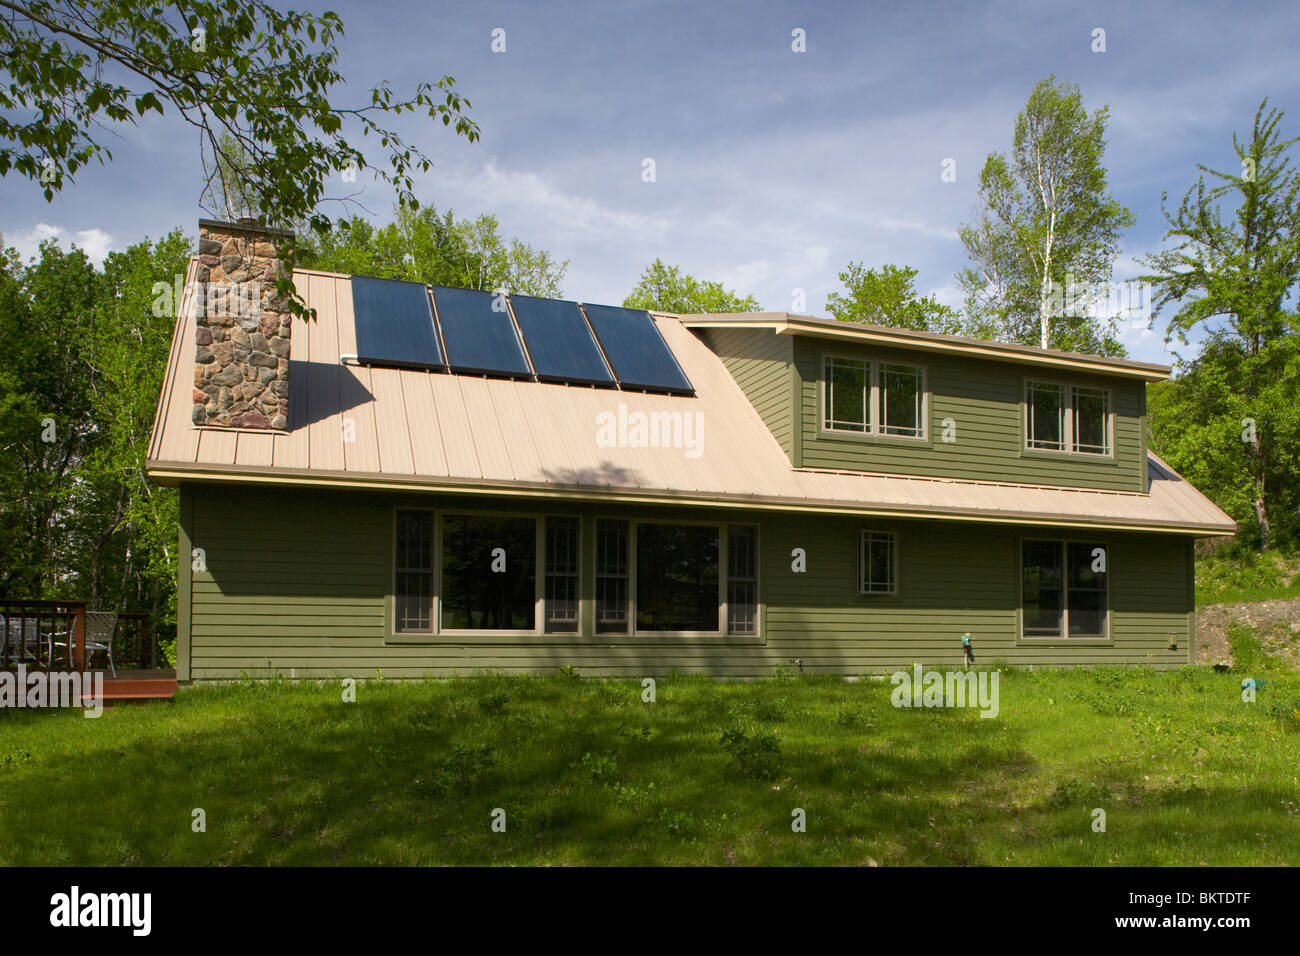 Solar panels on a newly built energy efficient home - Stock Image